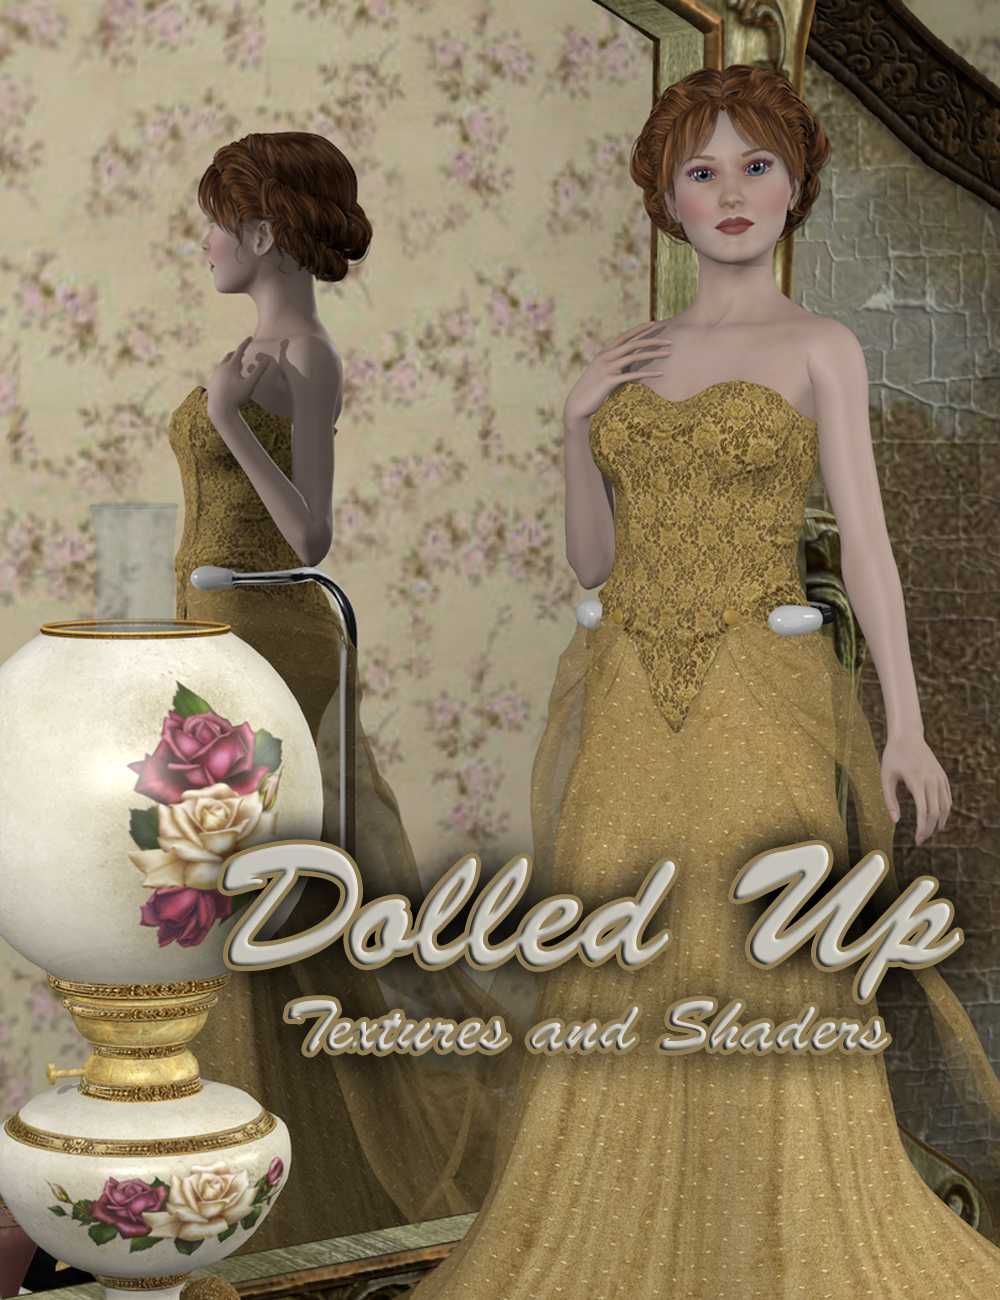 Dolled Up by: SloshWerks, 3D Models by Daz 3D